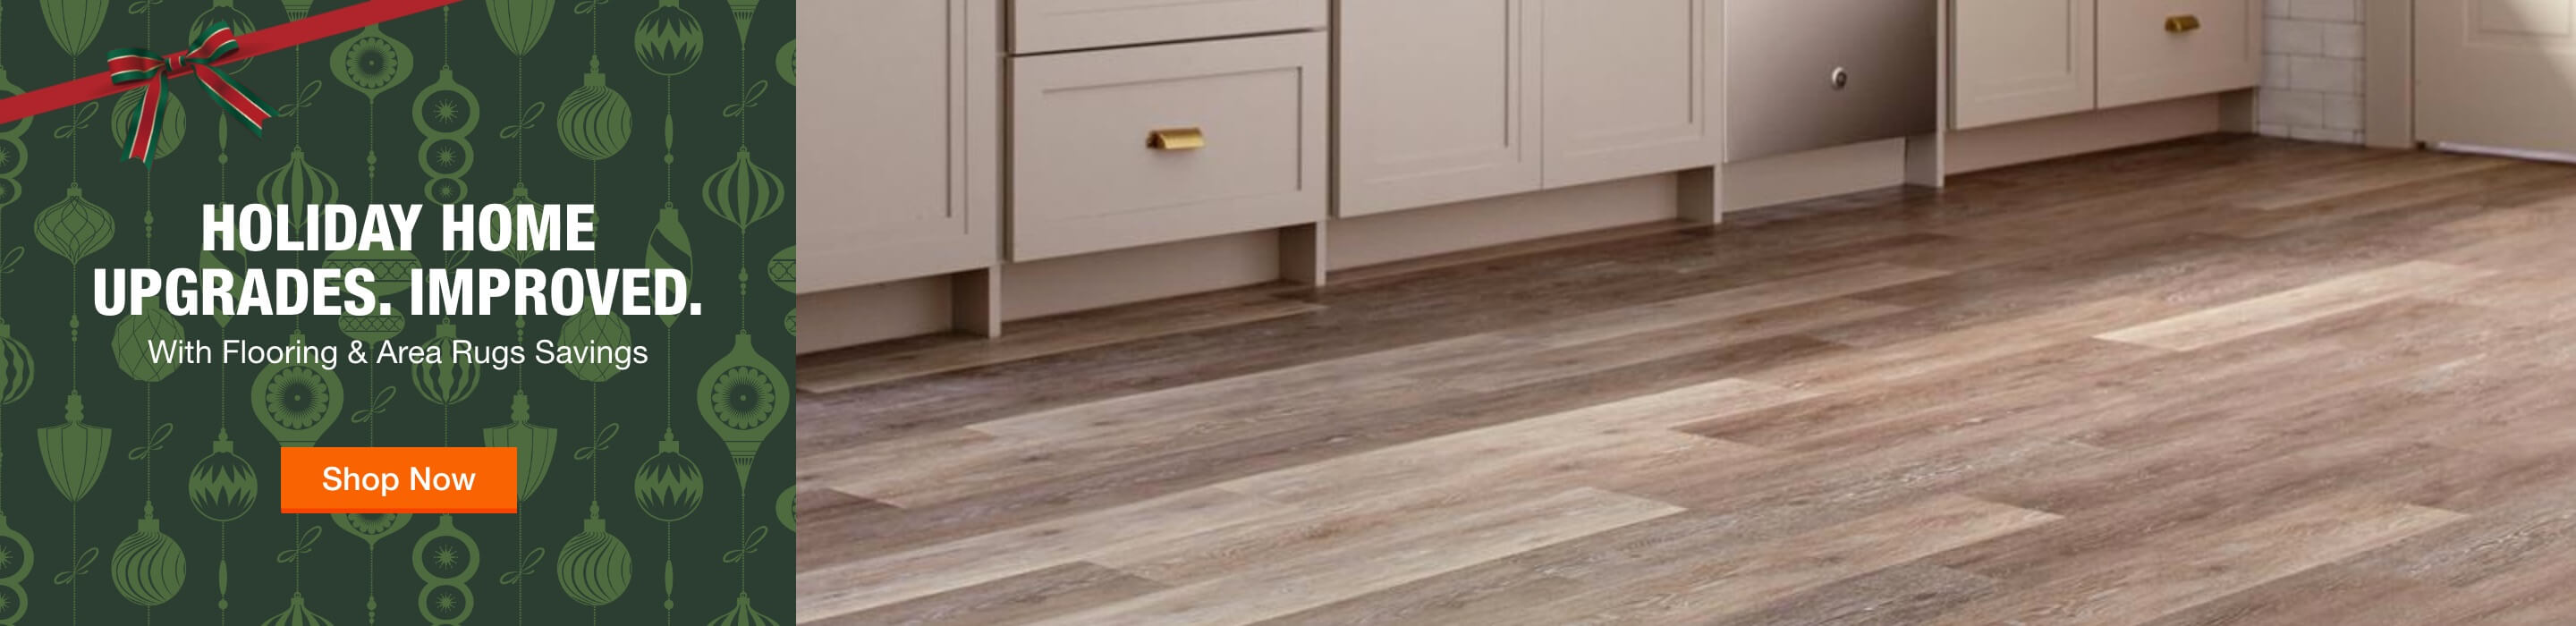 Holiday Home Upgrades. Improved. With Flooring & Area Rugs Savings. Shop Now